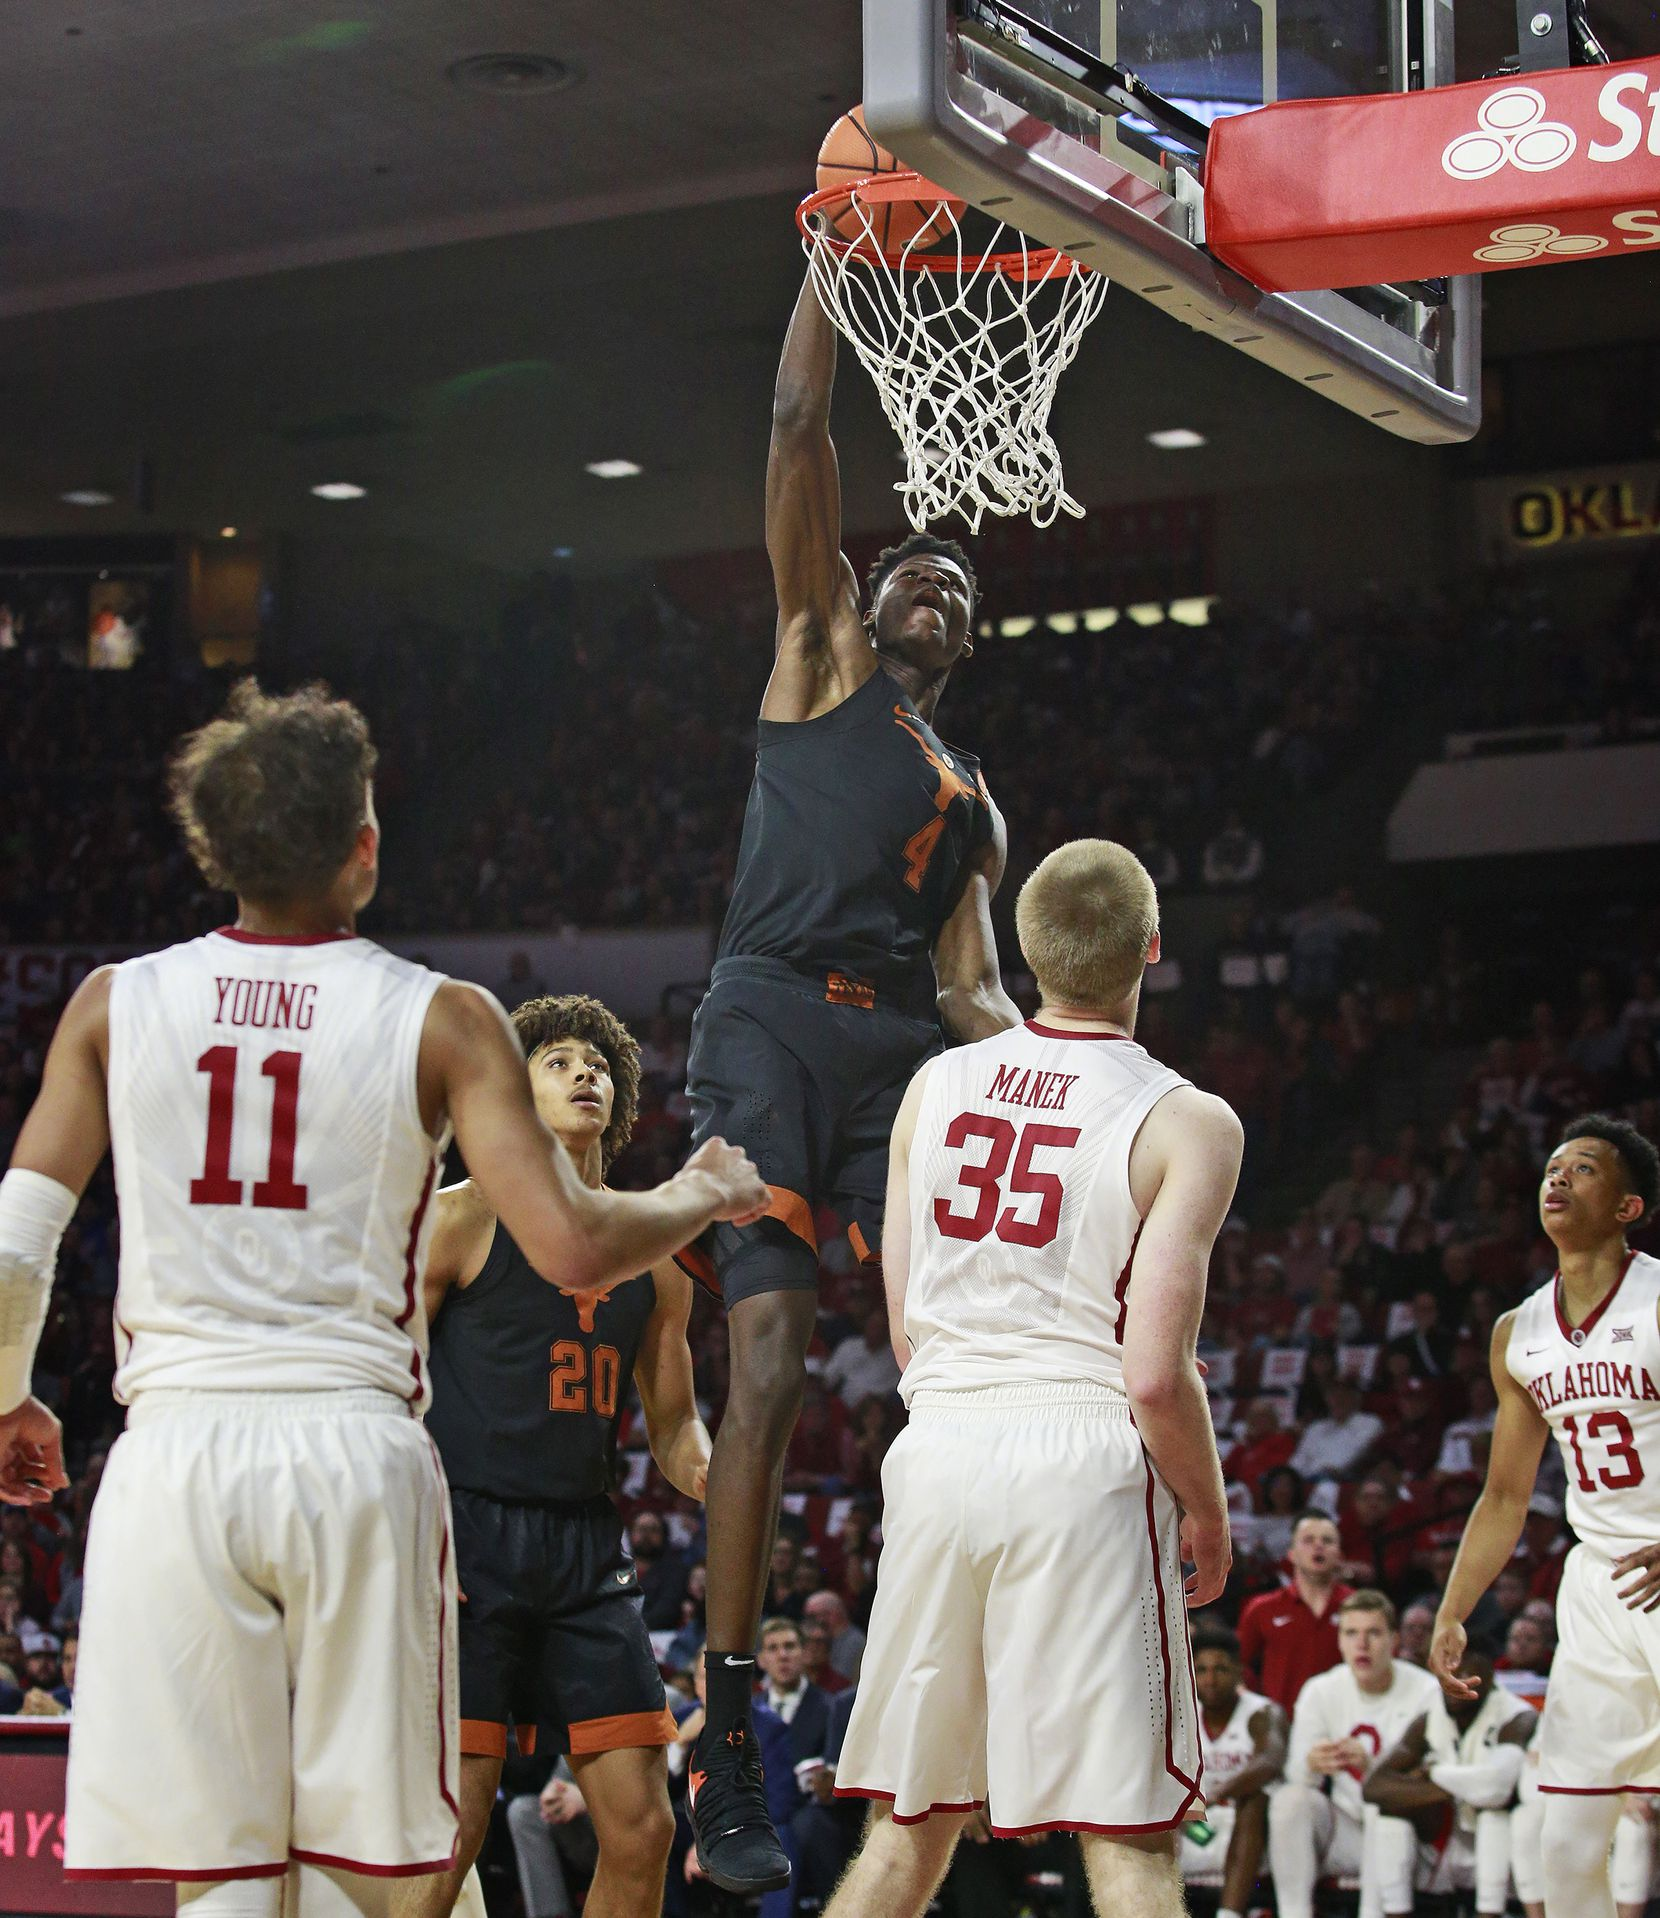 NORMAN, OK - FEBRUARY 17: Mohamed Bamba #4 of the Texas Longhorns dunks the ball against the Oklahoma Sooners at Lloyd Noble Center on February 17, 2018 in Norman, Oklahoma. The Longhorns defeated the Sooners 77-66. (Photo by Brett Deering/Getty Images)